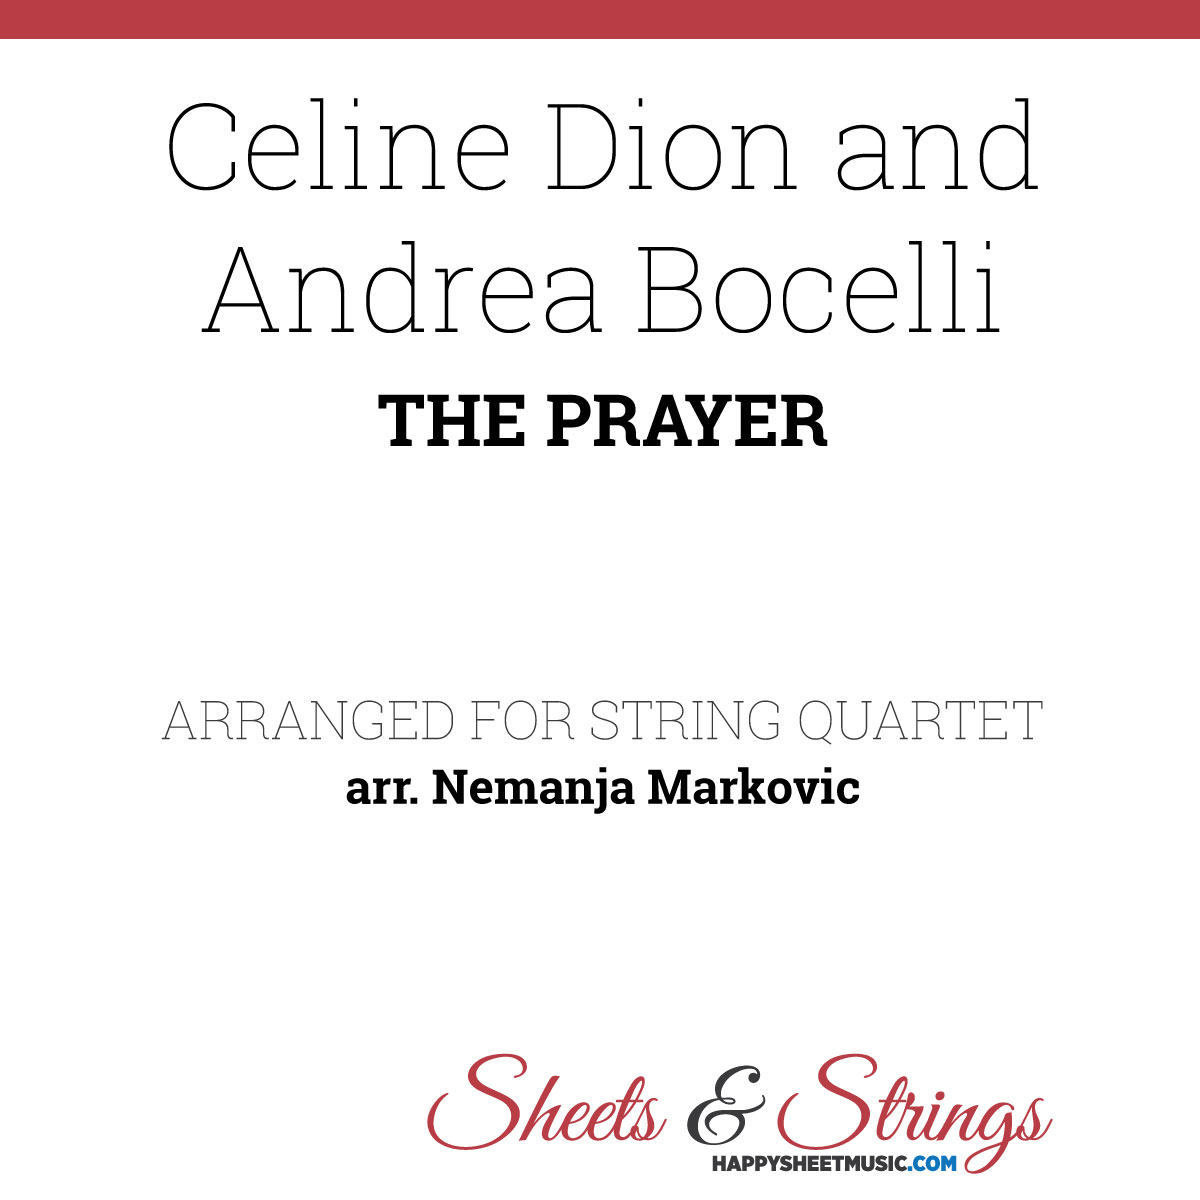 celine dion and andrea bocelli - the prayer - sheet music for string quartet  happy sheet music